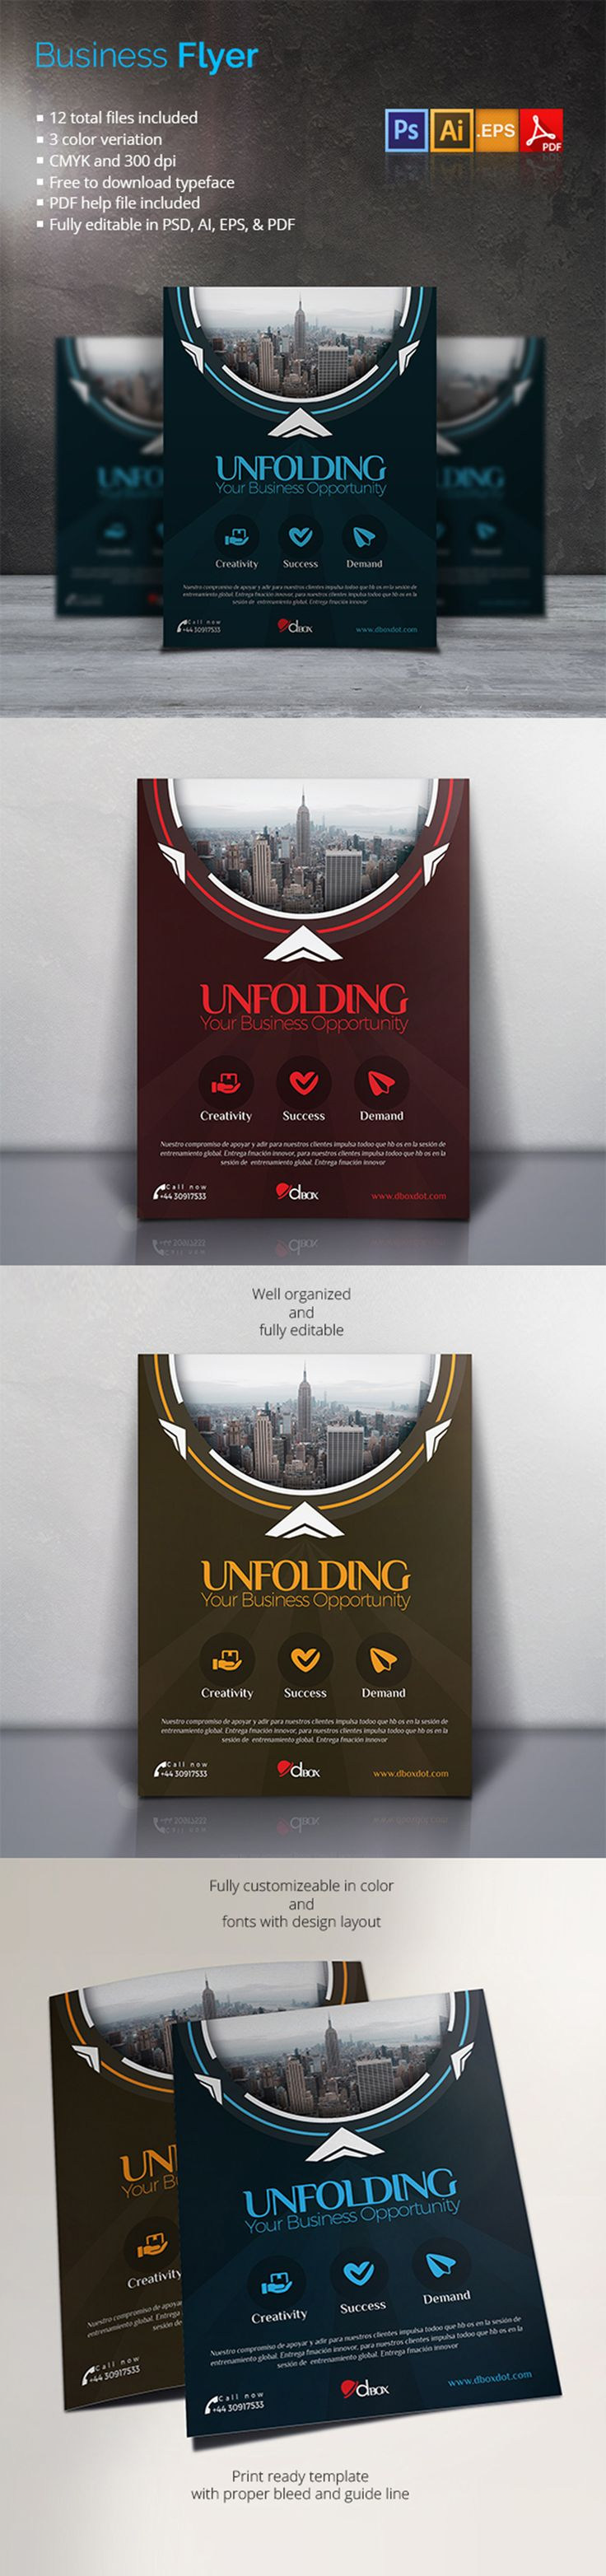 A high quality design work for the professionals. This Flyer Template has been developed to boost your Ultimate Marketing Opportunity and brand awareness for large and small organization, with well studied and effective marketing content.